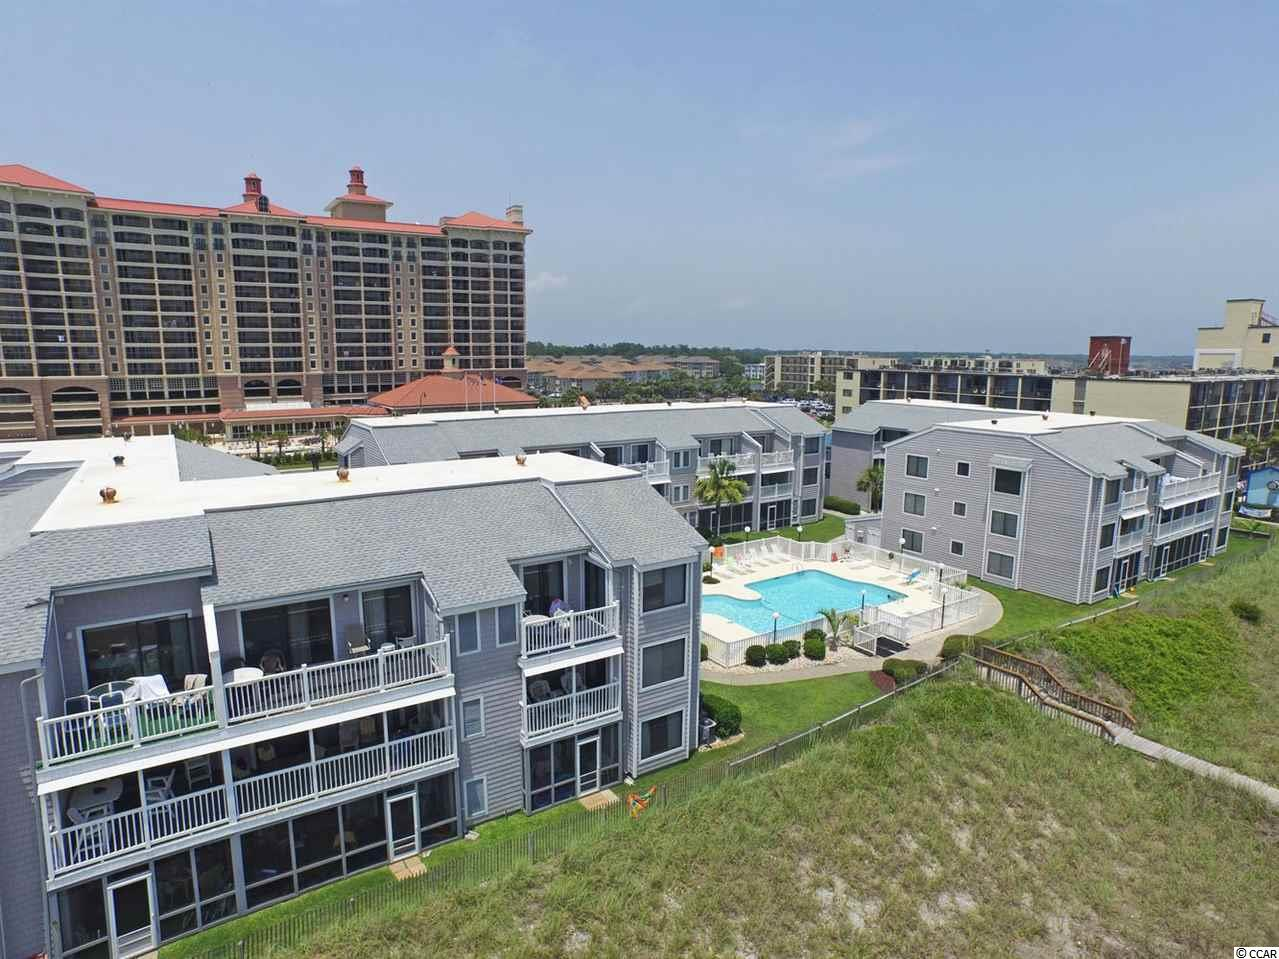 1703871 Sea Cloisters SEA CLOIS II - NMB condo for sale – North Myrtle Beach Real Estate